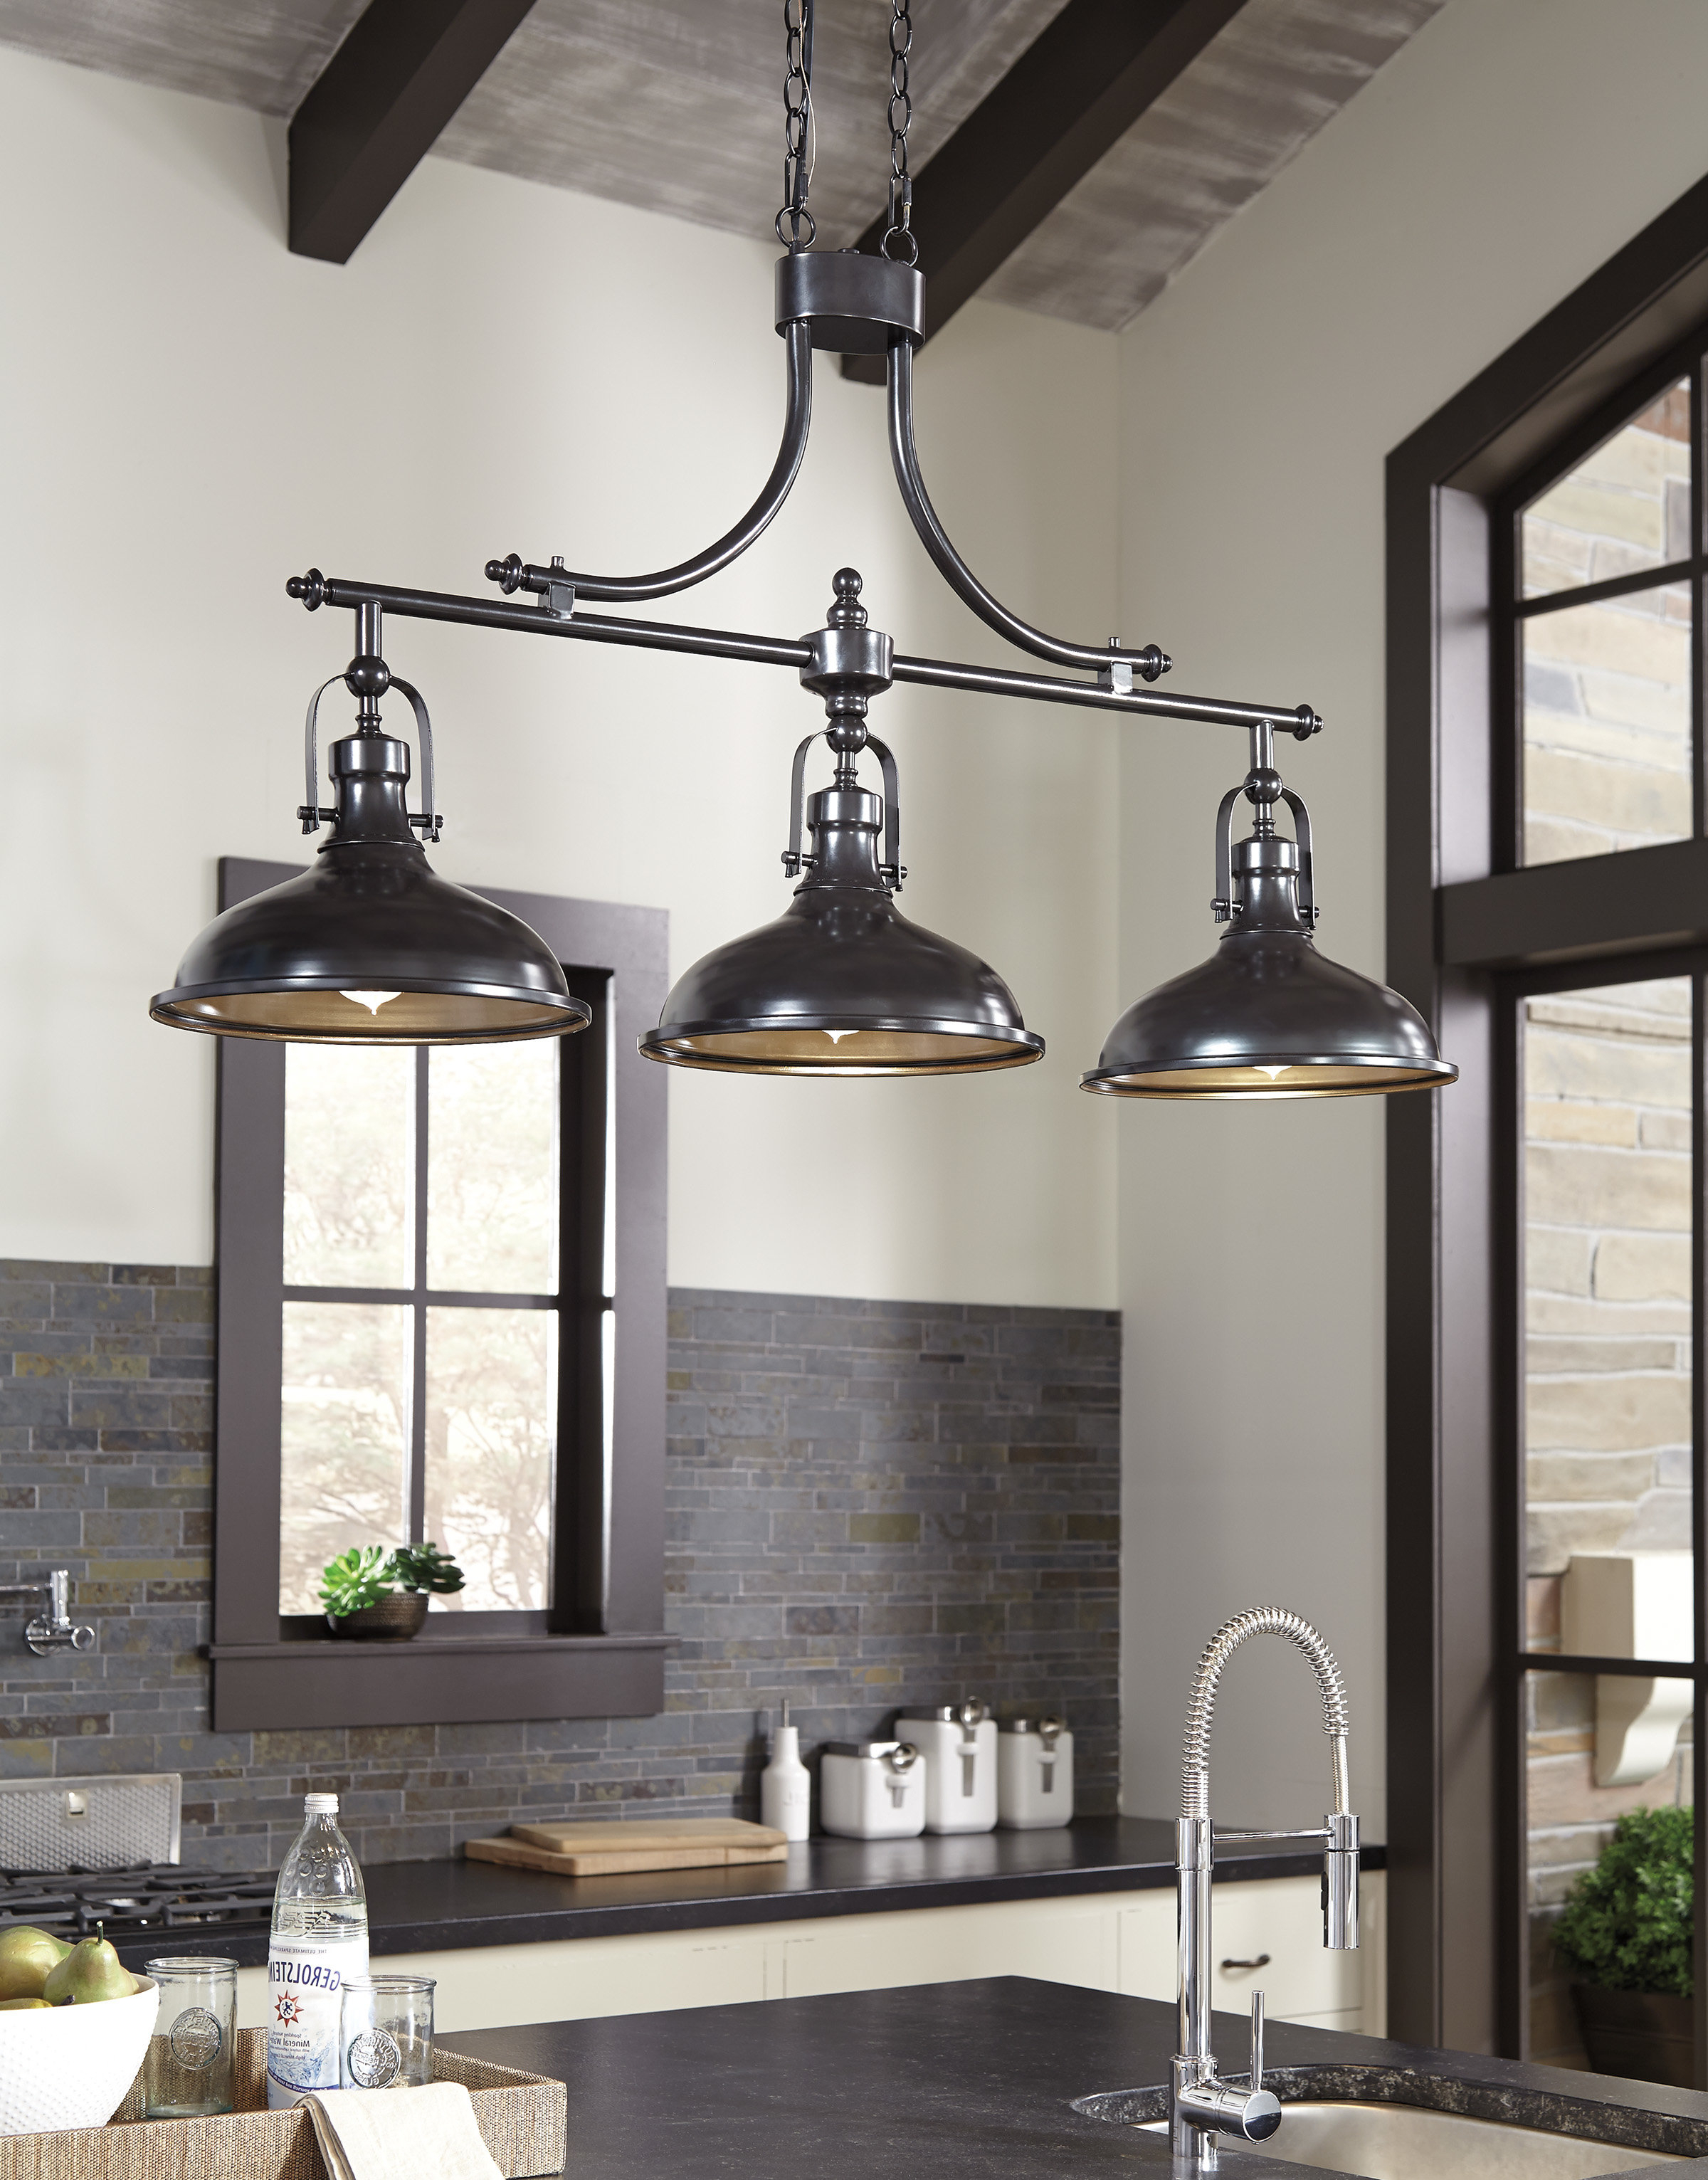 Birch Lane For Most Current Ariel 2 Light Kitchen Island Dome Pendants (View 16 of 25)